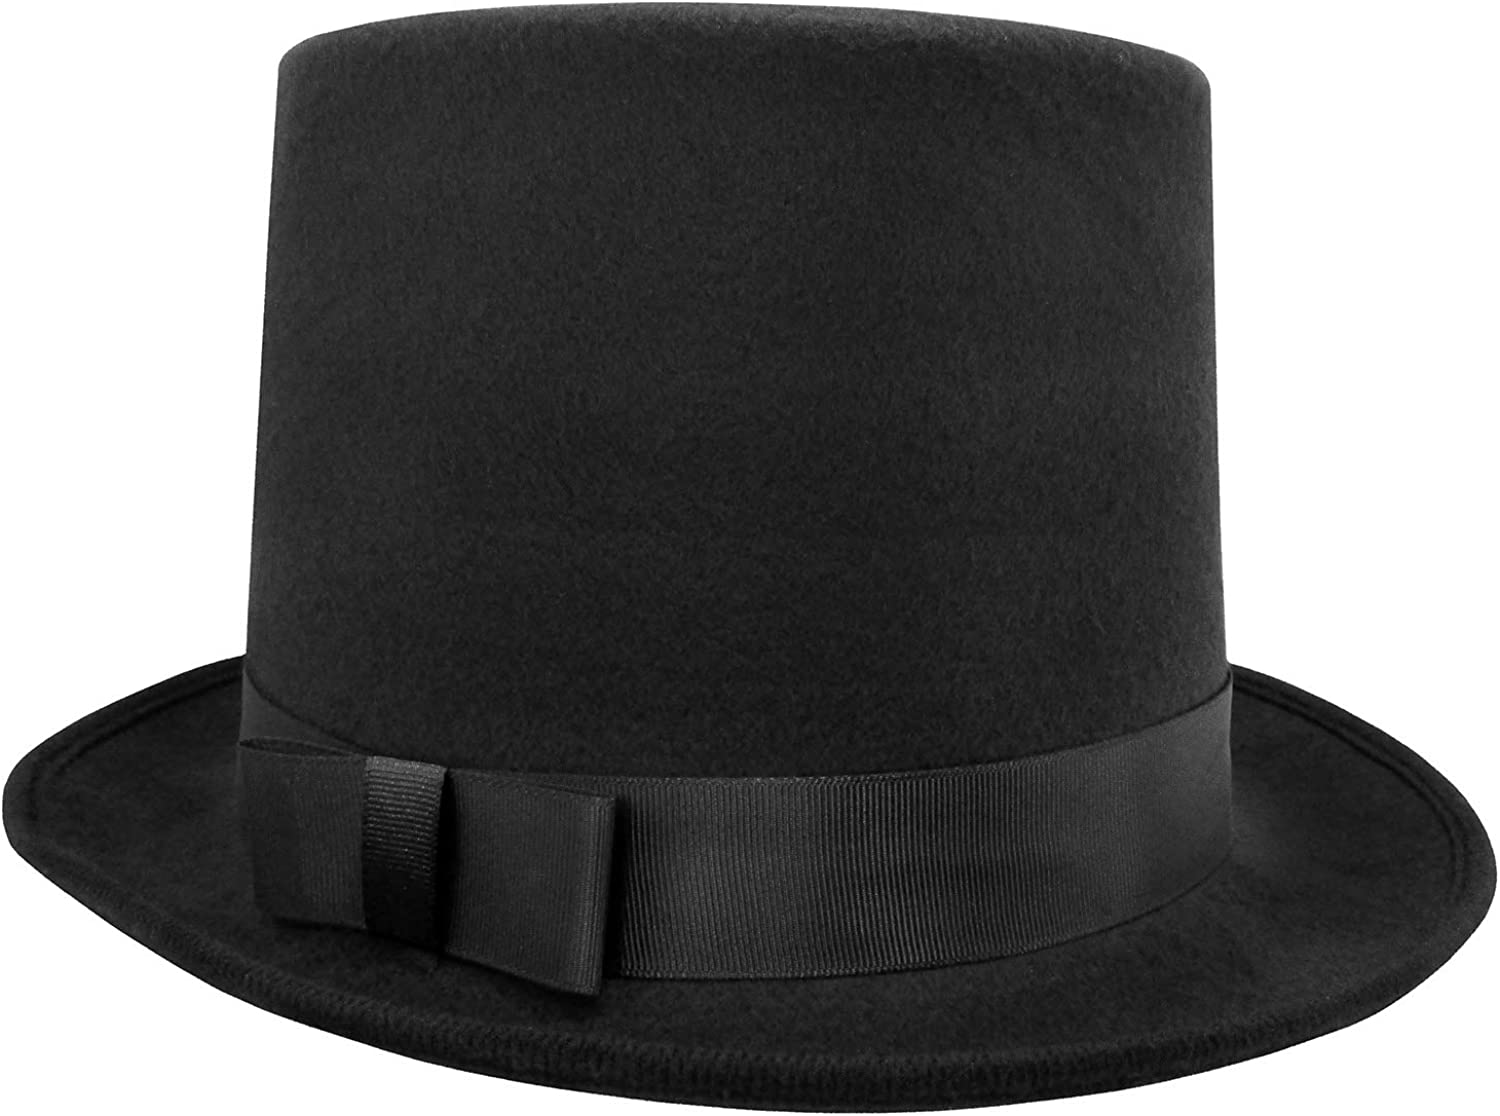 Wool Felt Costume Top Hat - Deluxe Tall for Ranking TOP8 Crown High A Super sale period limited